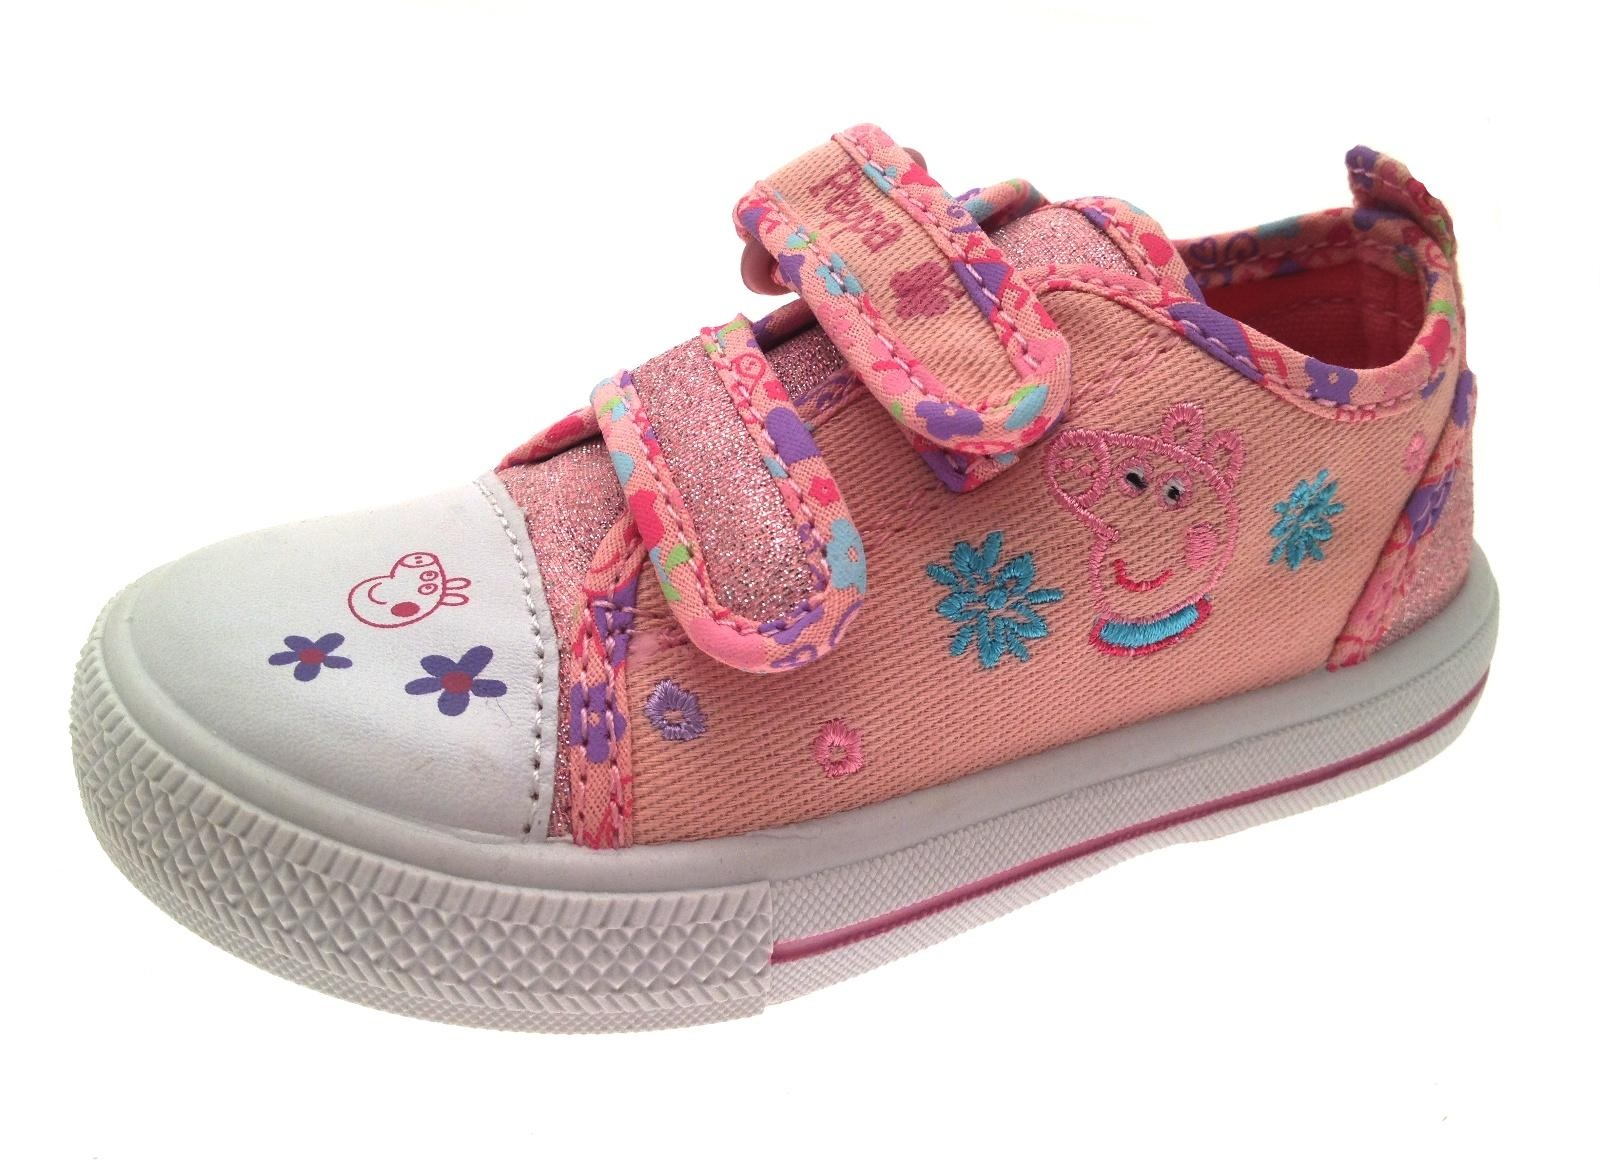 Peppa Pig Canvas Pumps Girls Glitter Trainers Infants Shoes Plimsolls Kids Size